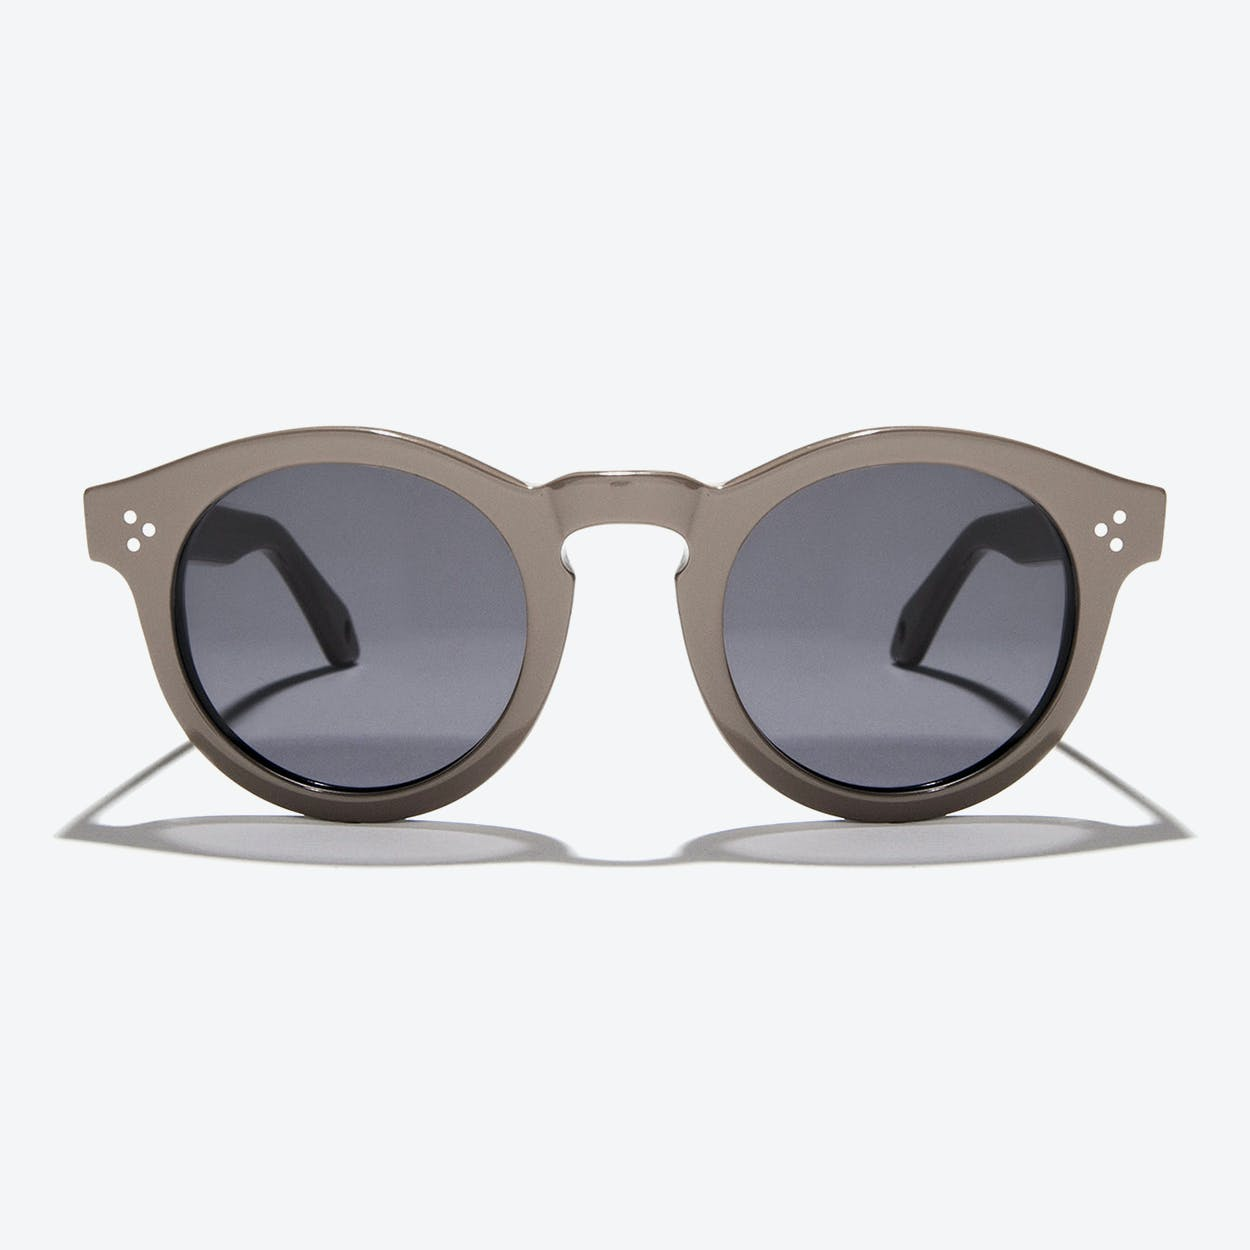 Orpheus Sunglasses in Grey